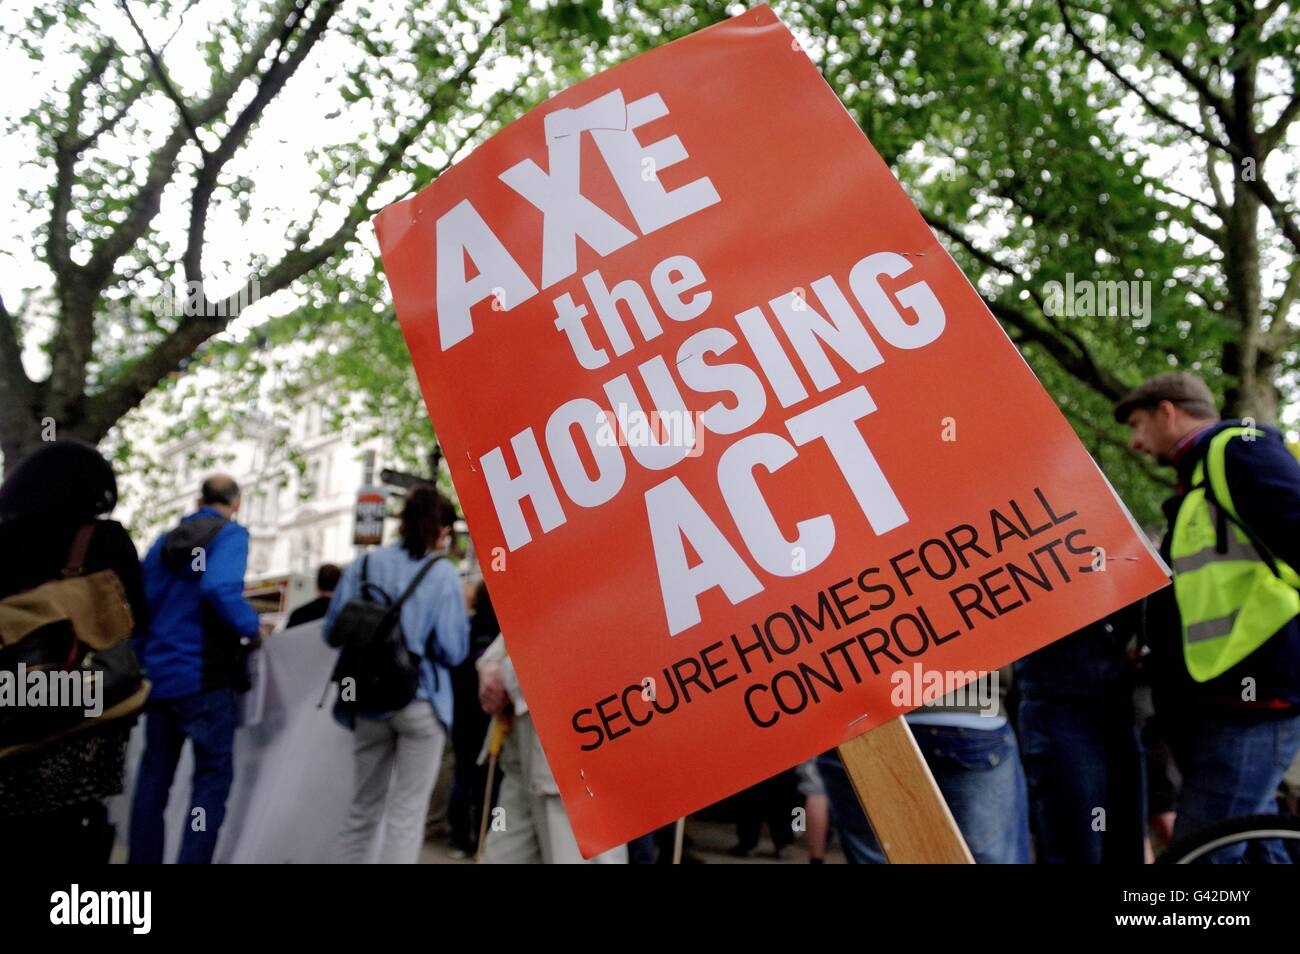 London, UK. 18th June 2016. Housing campaigners organised by Kill the Housing Bill march against government plans Stock Photo